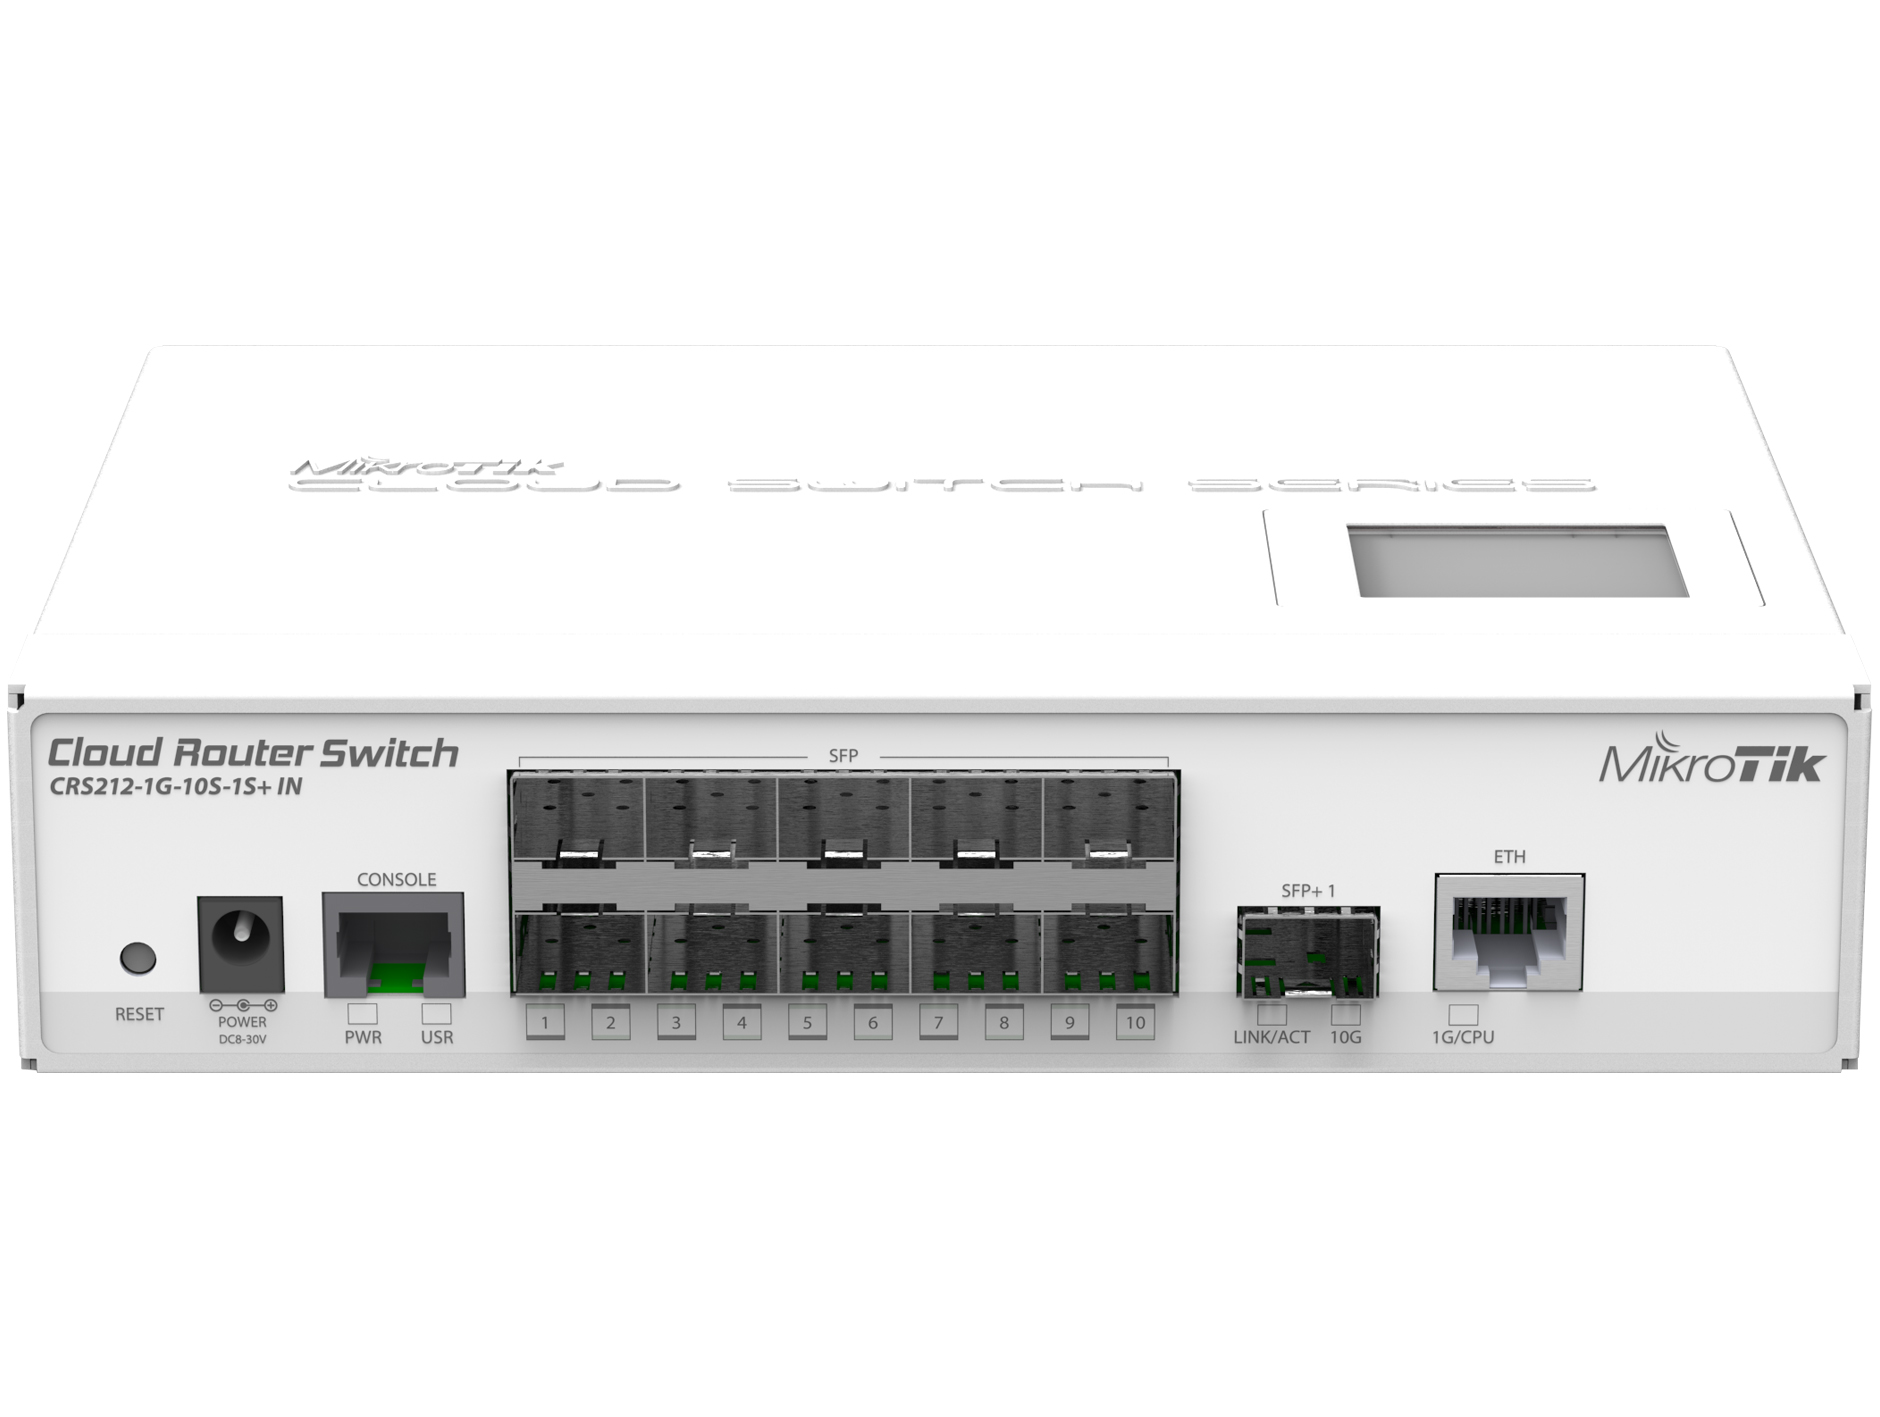 Products Mikrotik Help Tech Co Ltd Cloud Core Router 1036 12g 4s Crs212 1g 10s 1s In Layer 3 Gigabit Switch